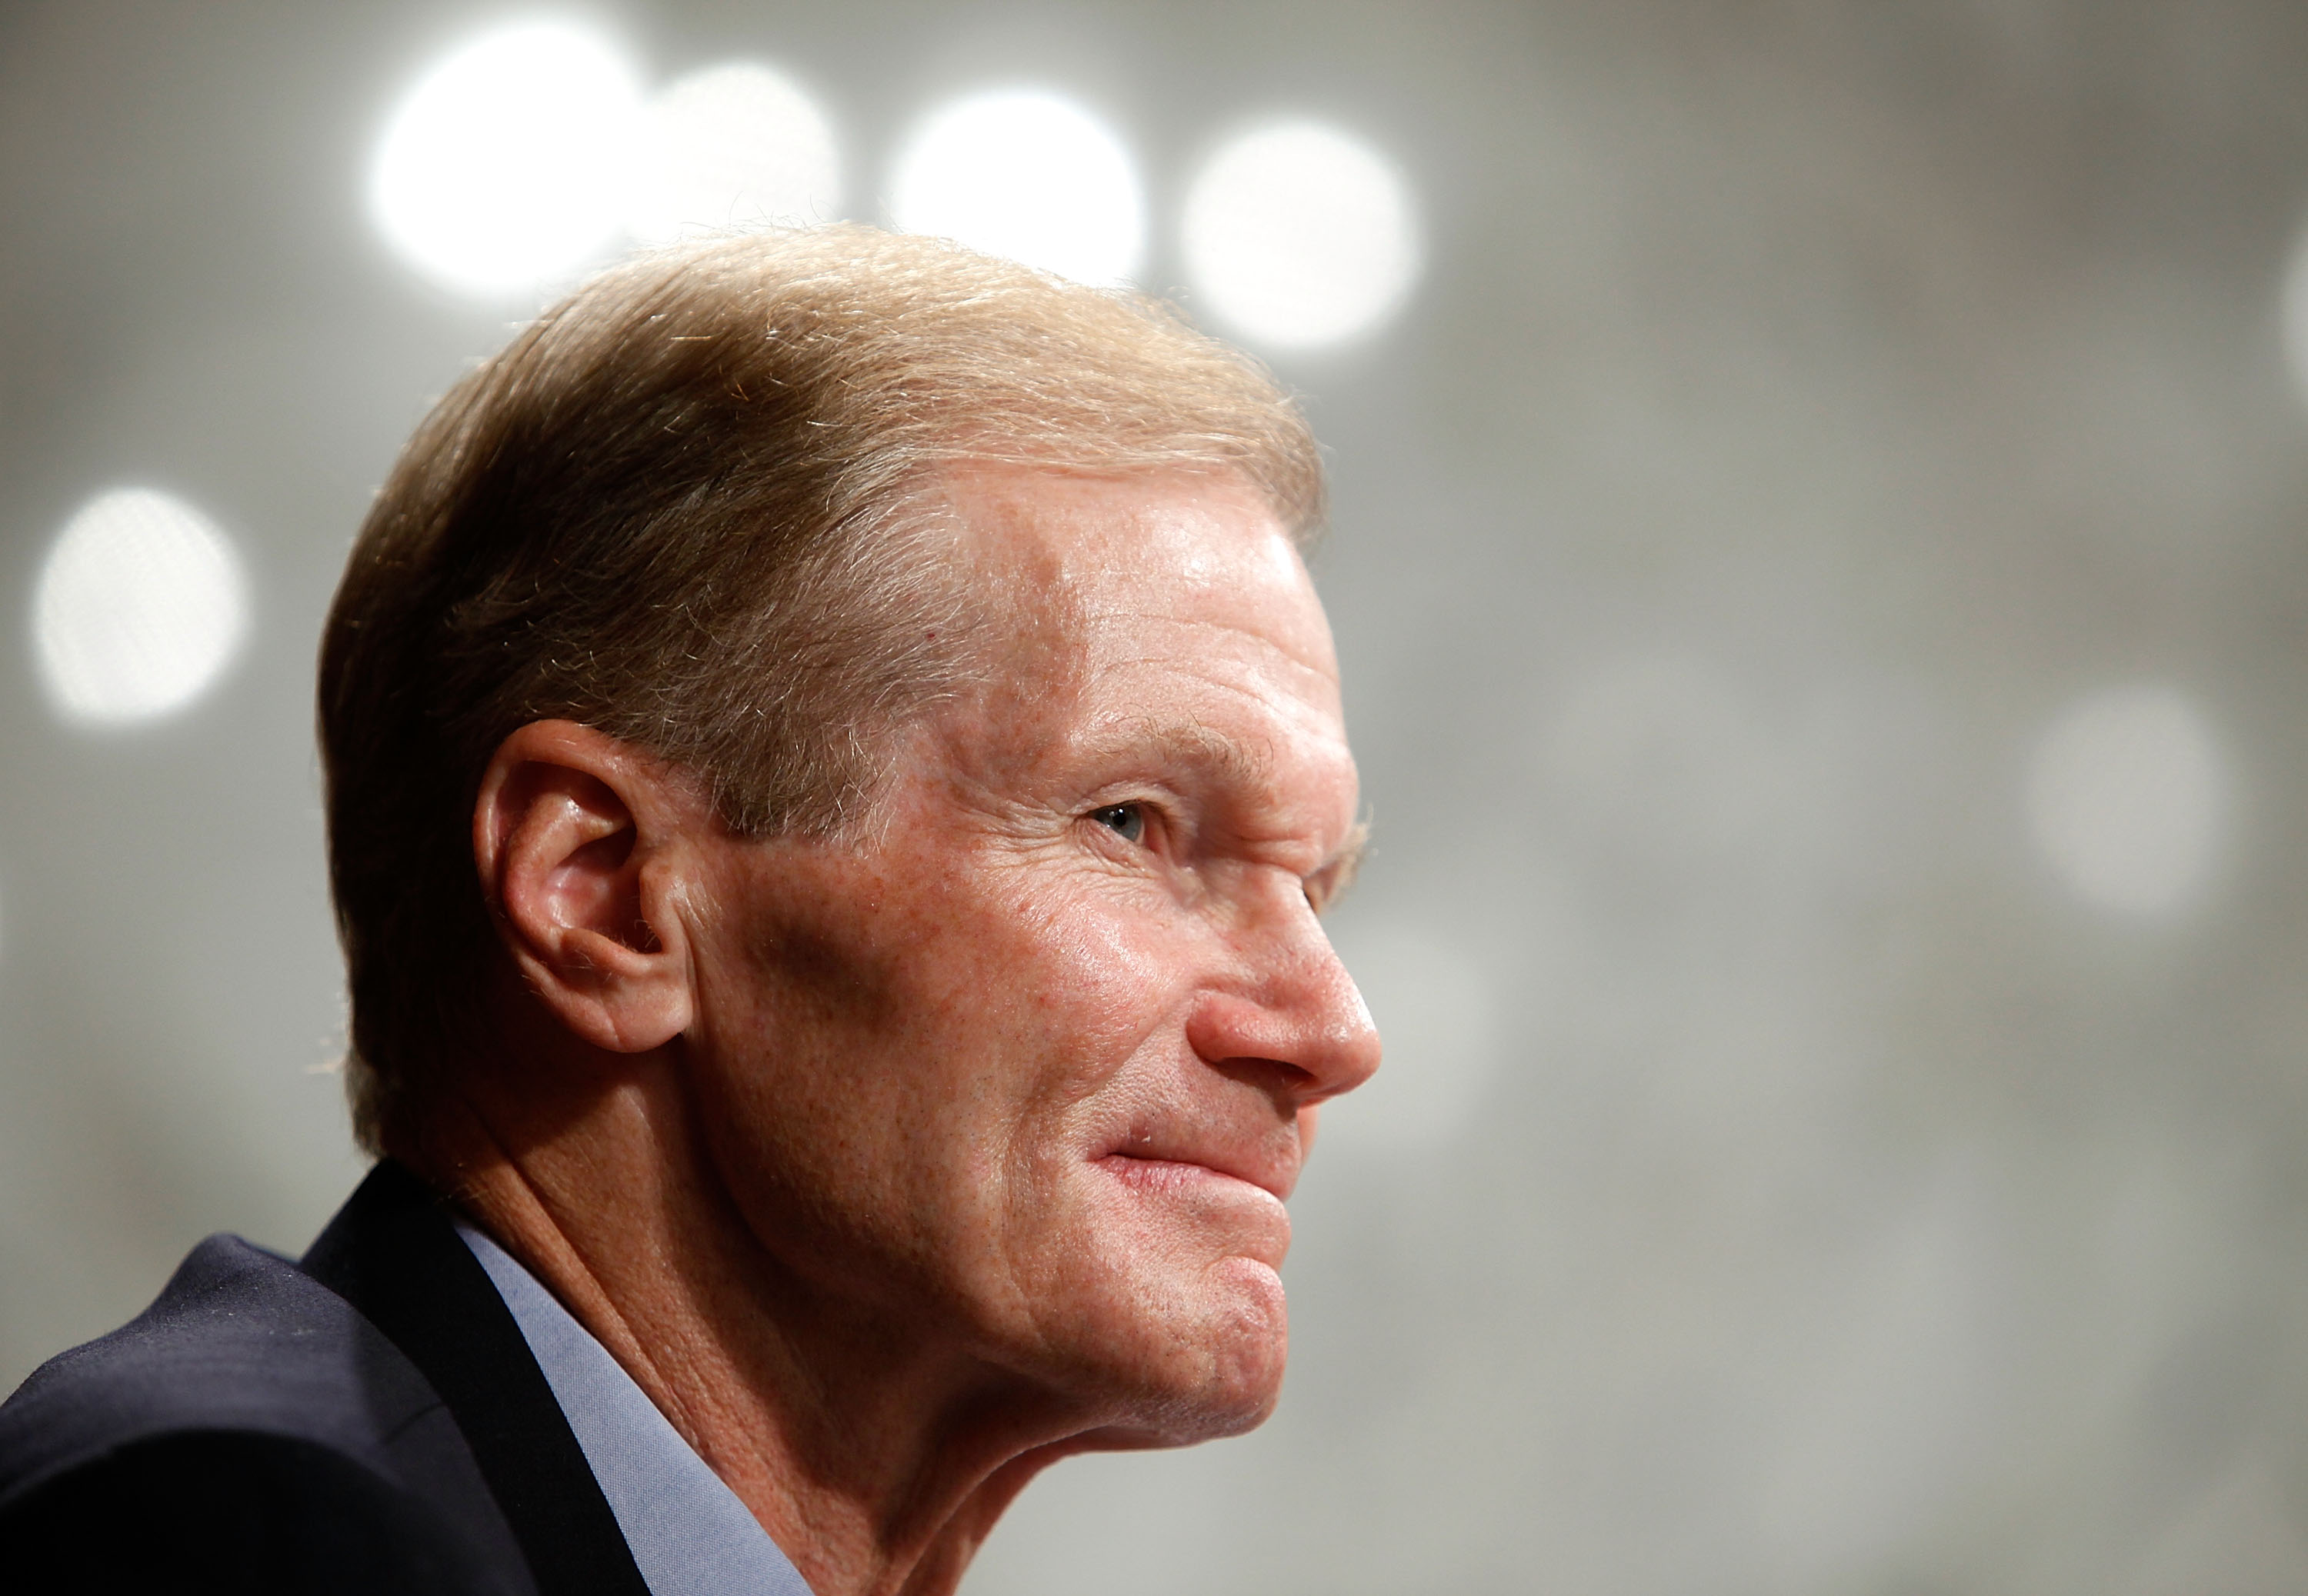 Sen. Nelson: Obama's made mistakes